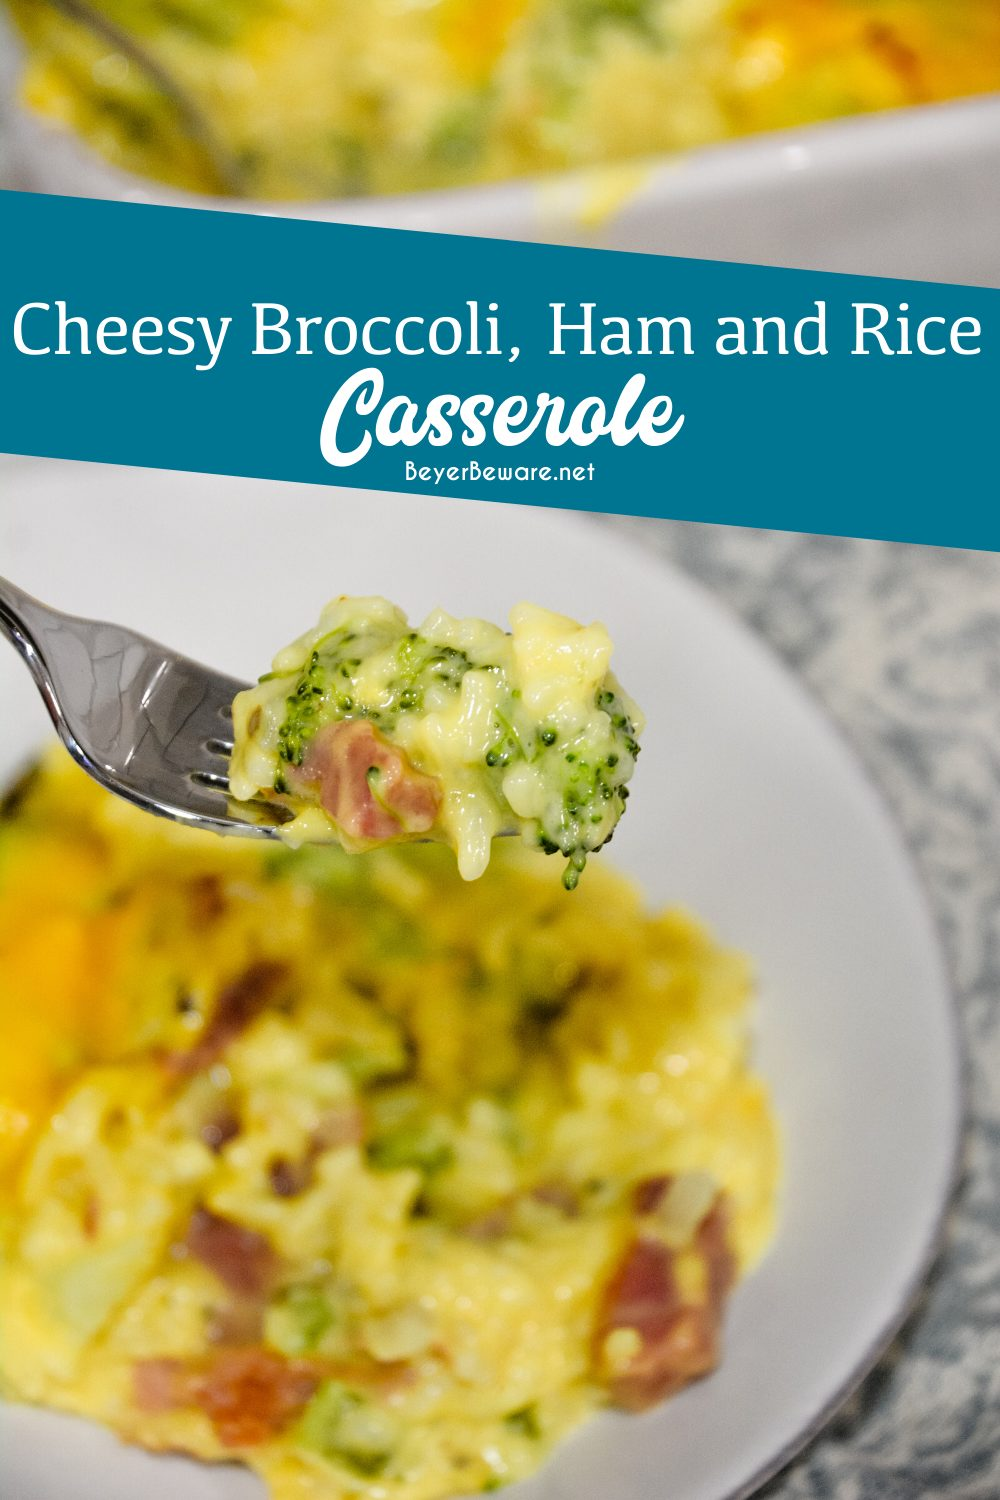 Cheesy ham, broccoli, and rice casserole quickly combined steamed broccoli and cauliflower, diced onions and celery, minute rice, and creamy cheese sauce. Baked for a quick 30 minutes for an easy dinner recipe. #Casseroles #Ham #Cheese #EasyDinners #Leftover